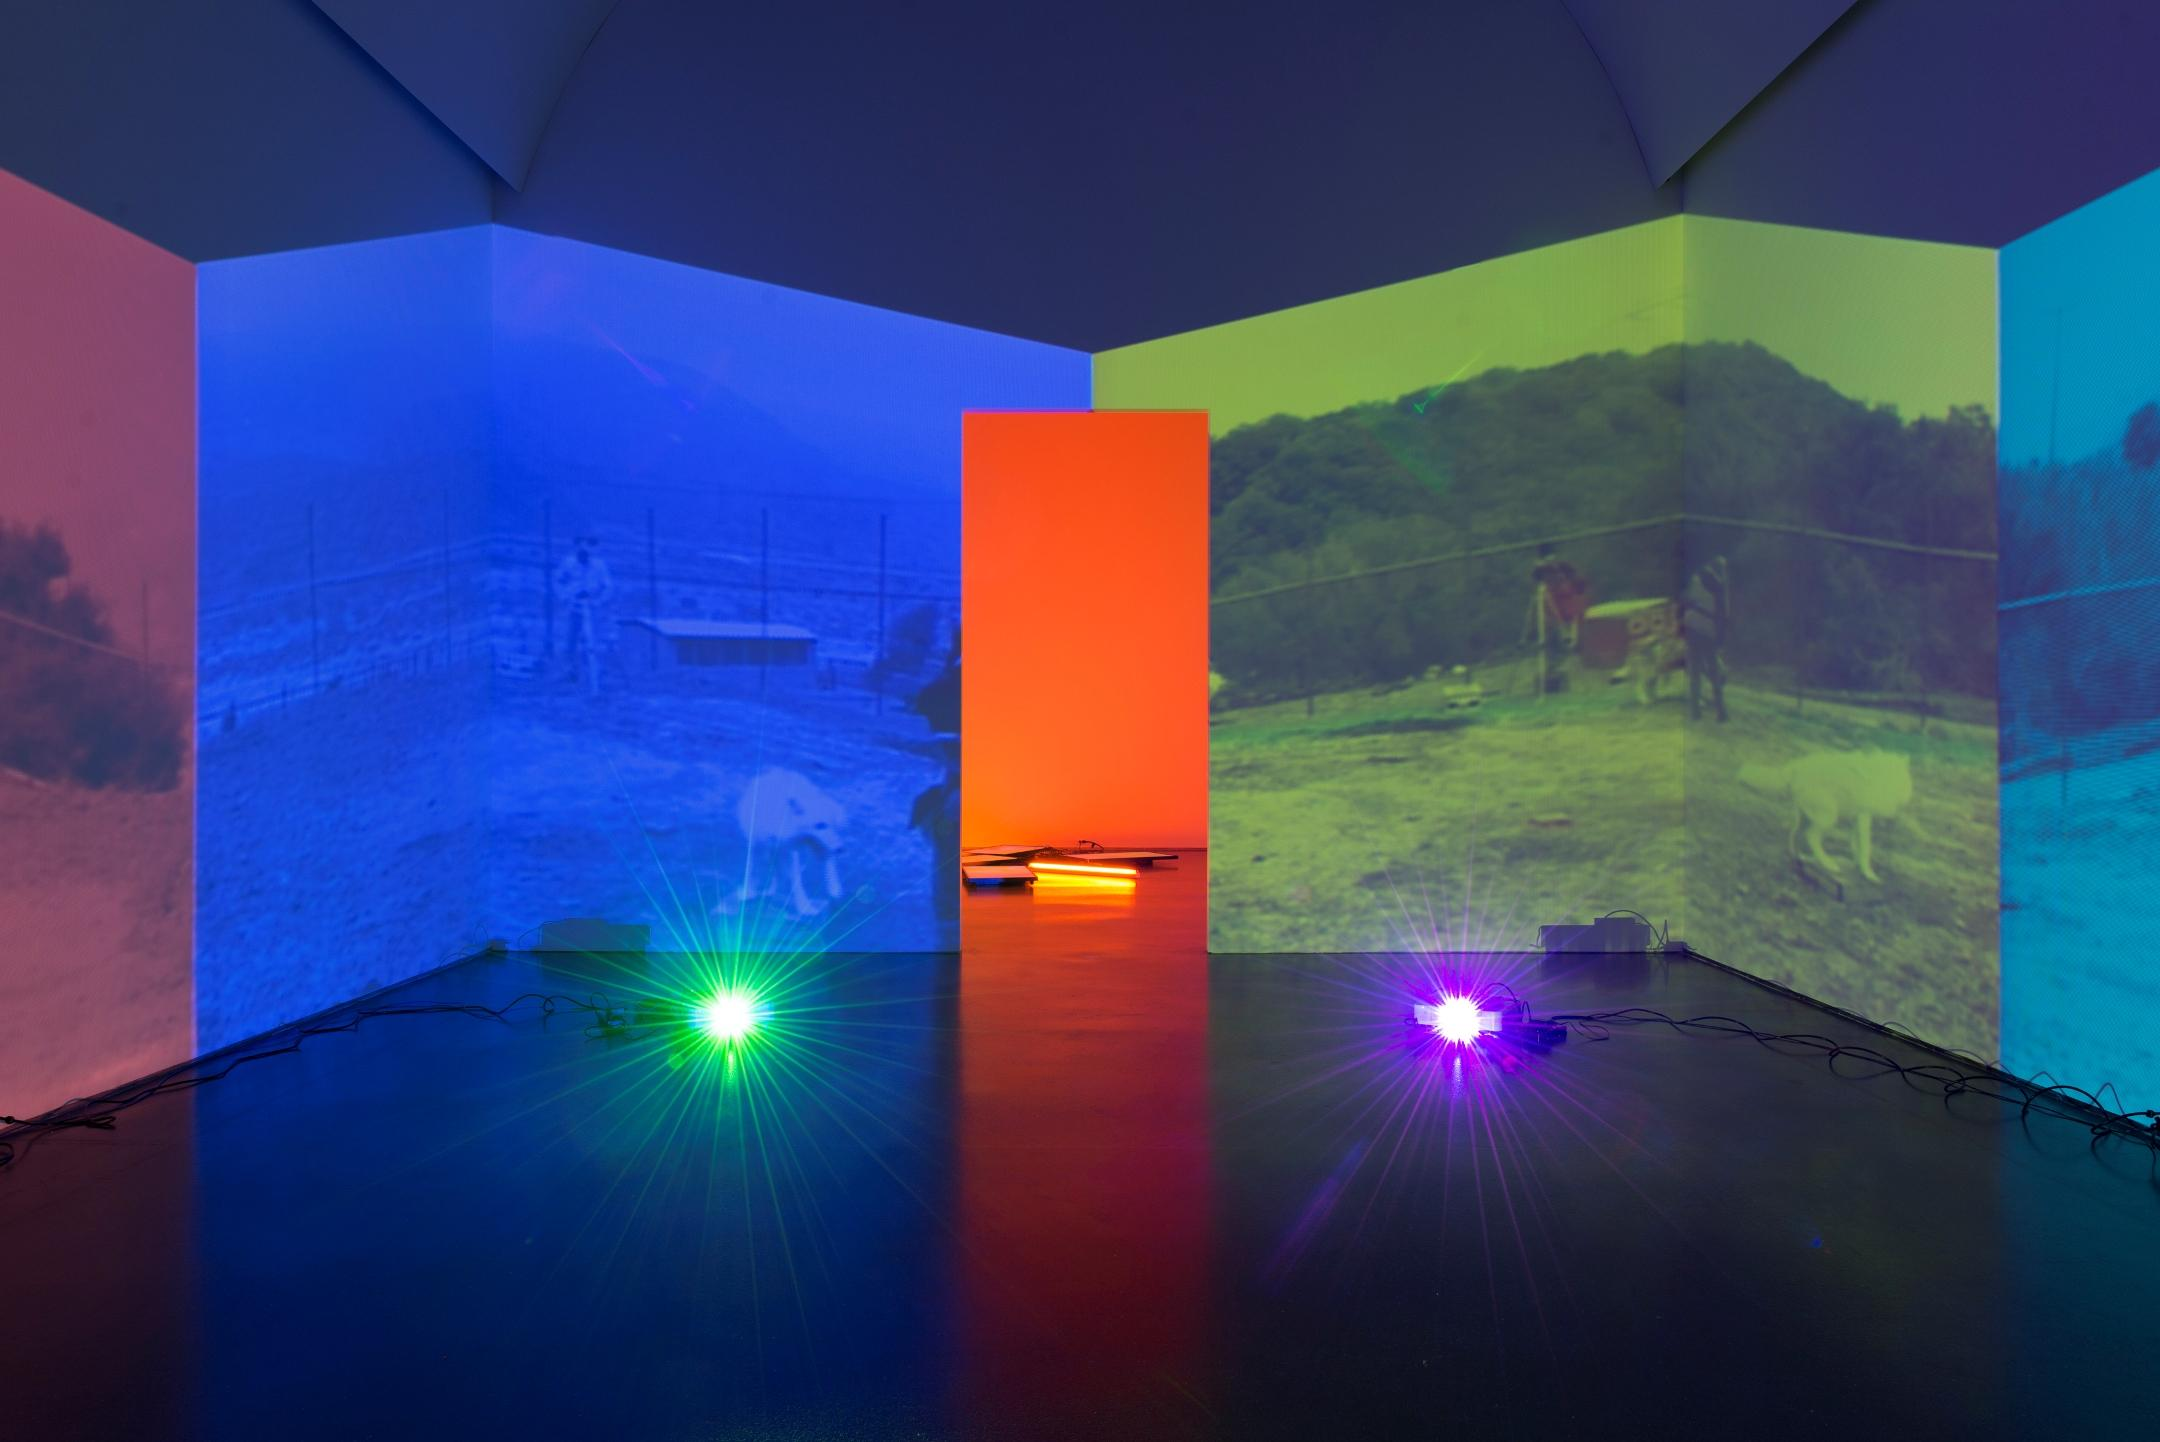 You are in a room with four projections of similar images of two wolves in muted, jewel tones. Two projectors on the floor project at you. In the middle of the room is a door leading to another brightly lit gallery.